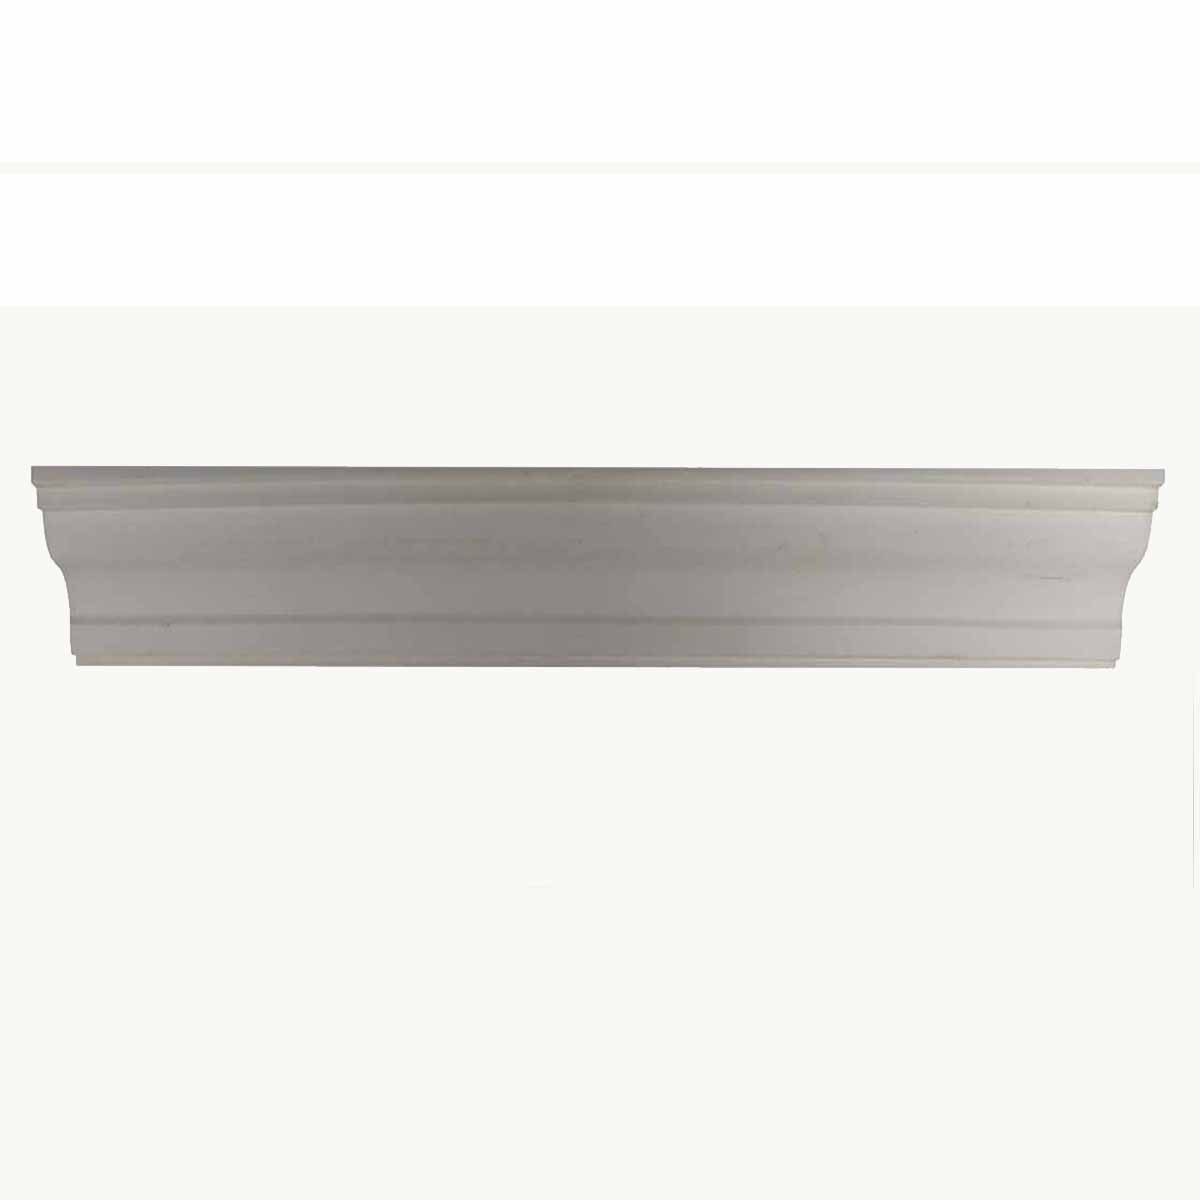 Cornice White Urethane Sample of 11483 23.5 Long Cornice Cornice Moulding Cornice Molding